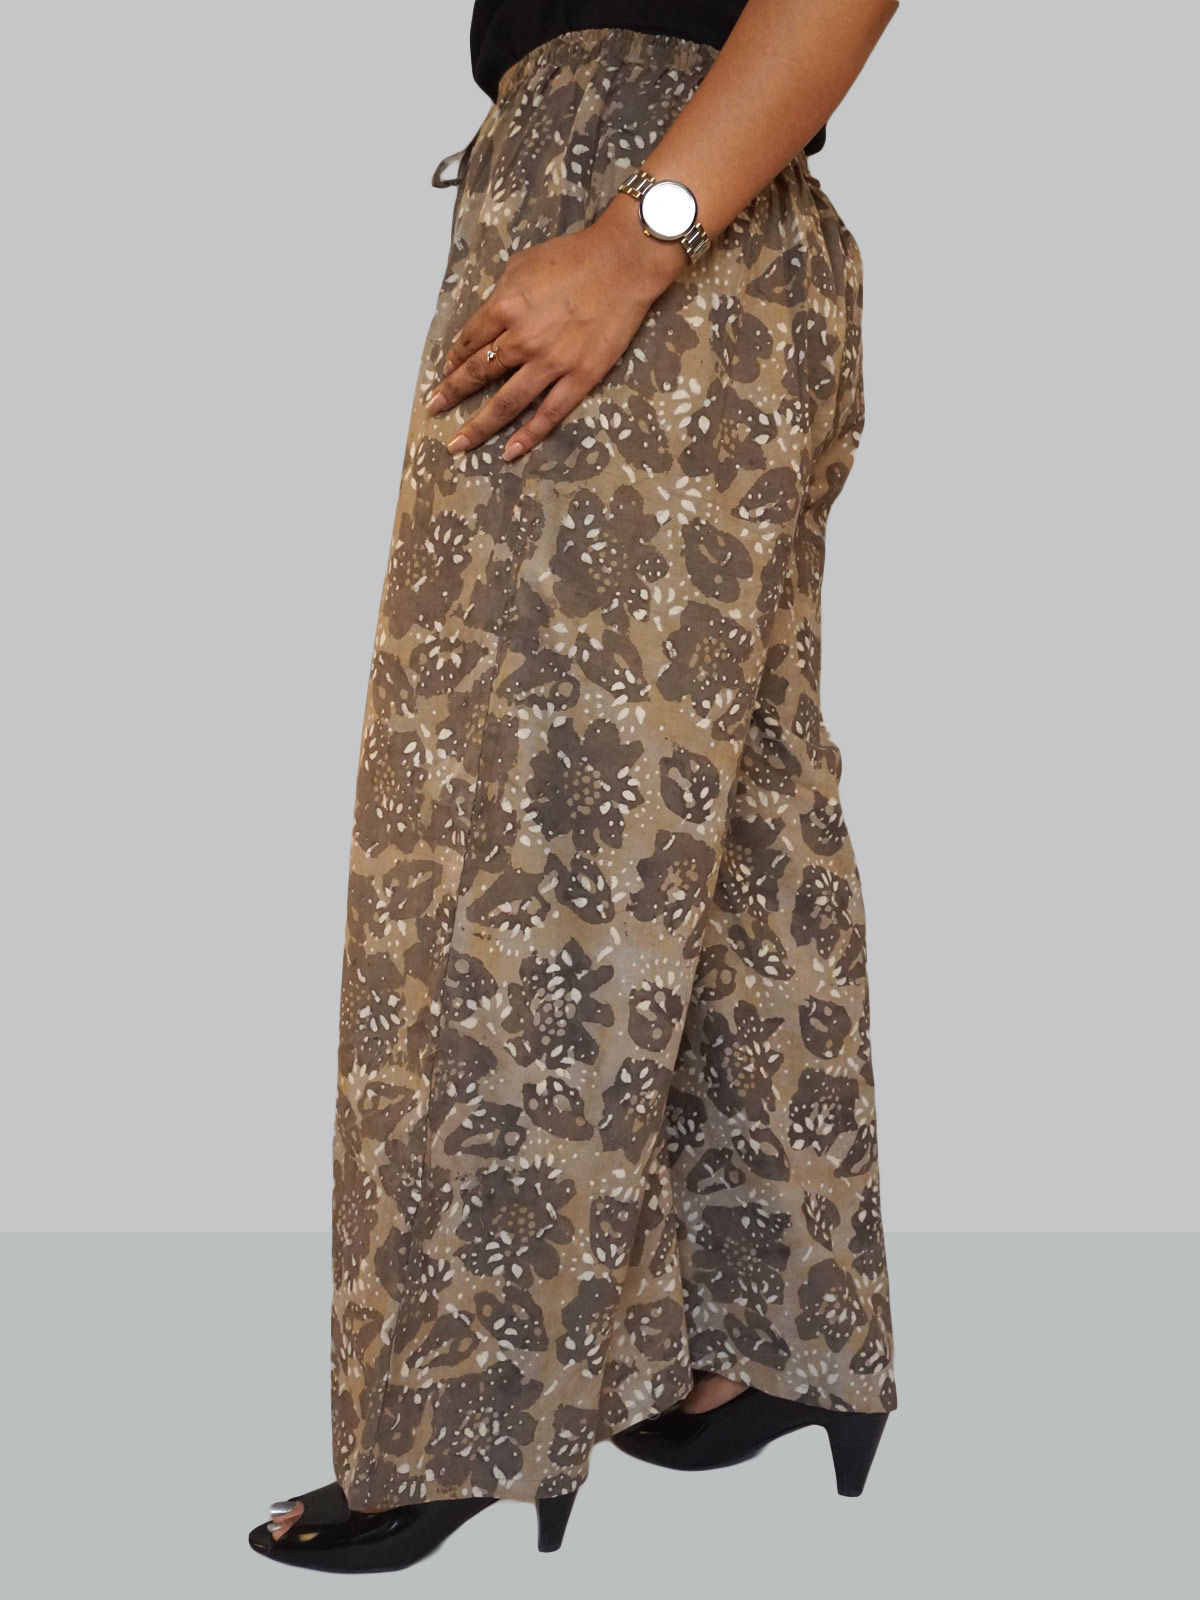 Brown cotton floral block printed palazzo